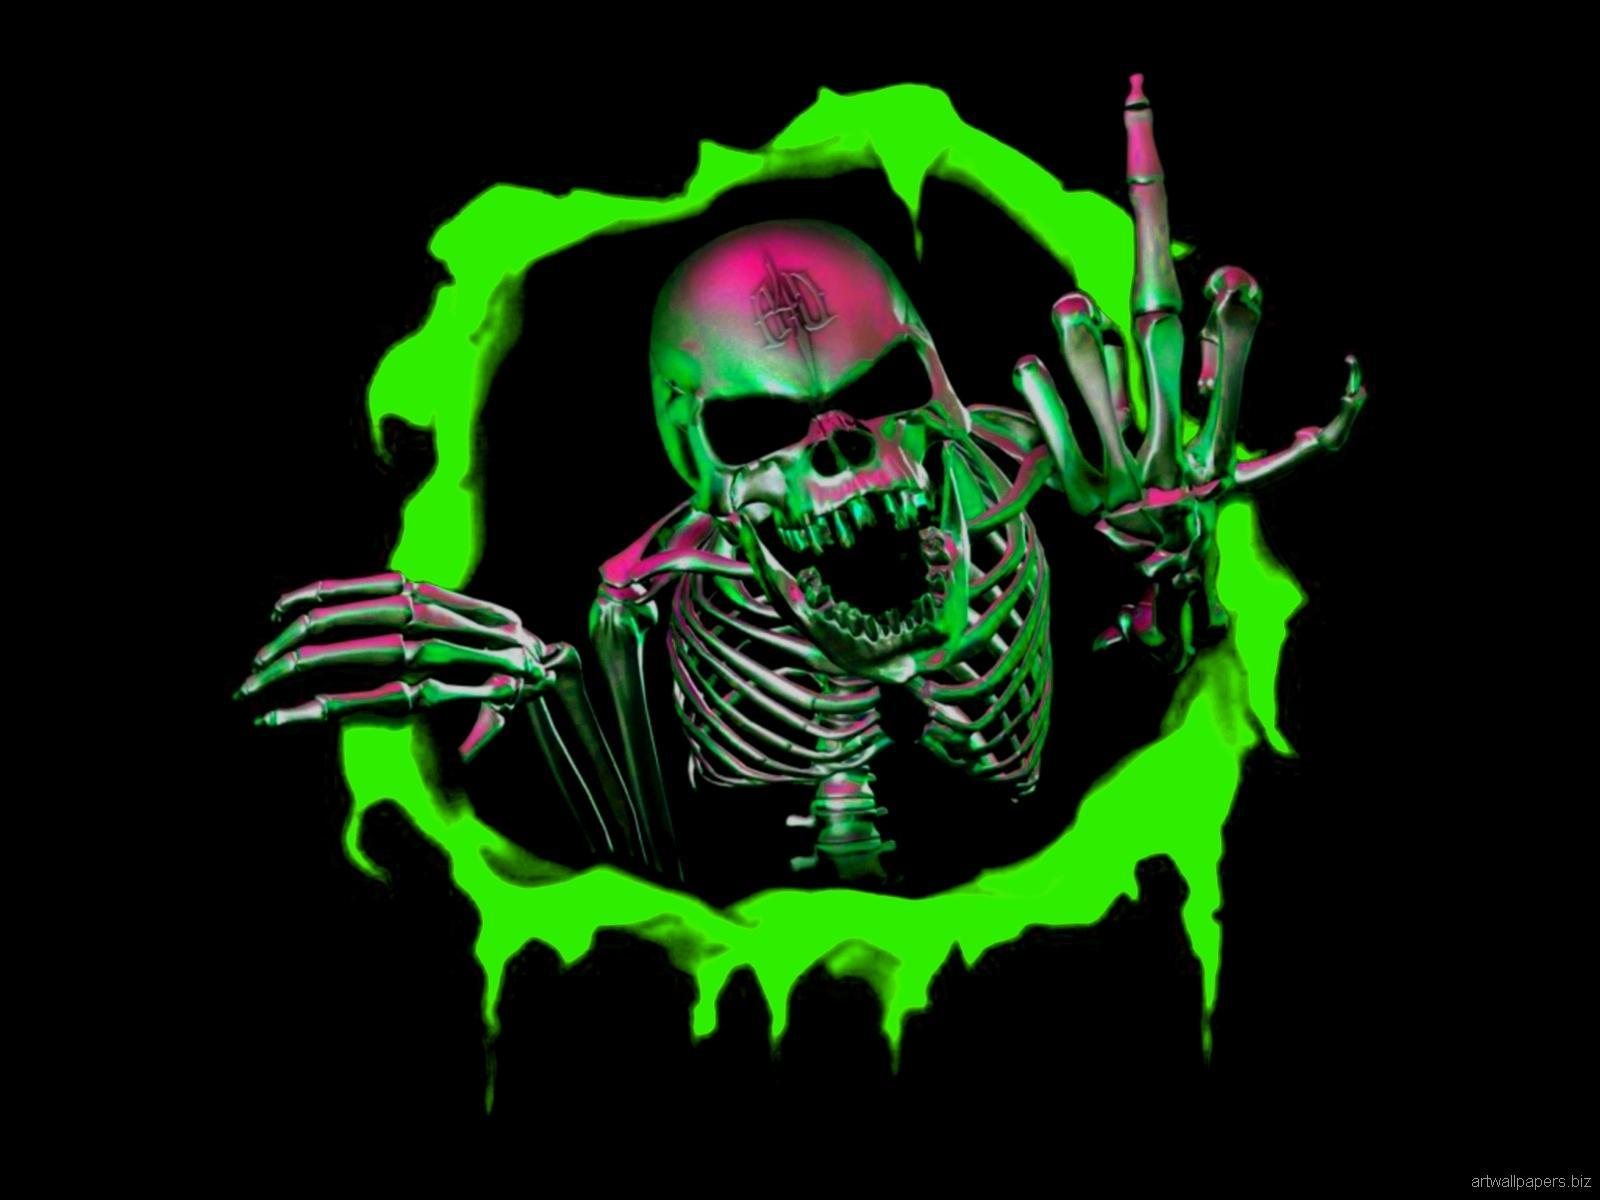 Skull wallpaper HD for Android - APK Download